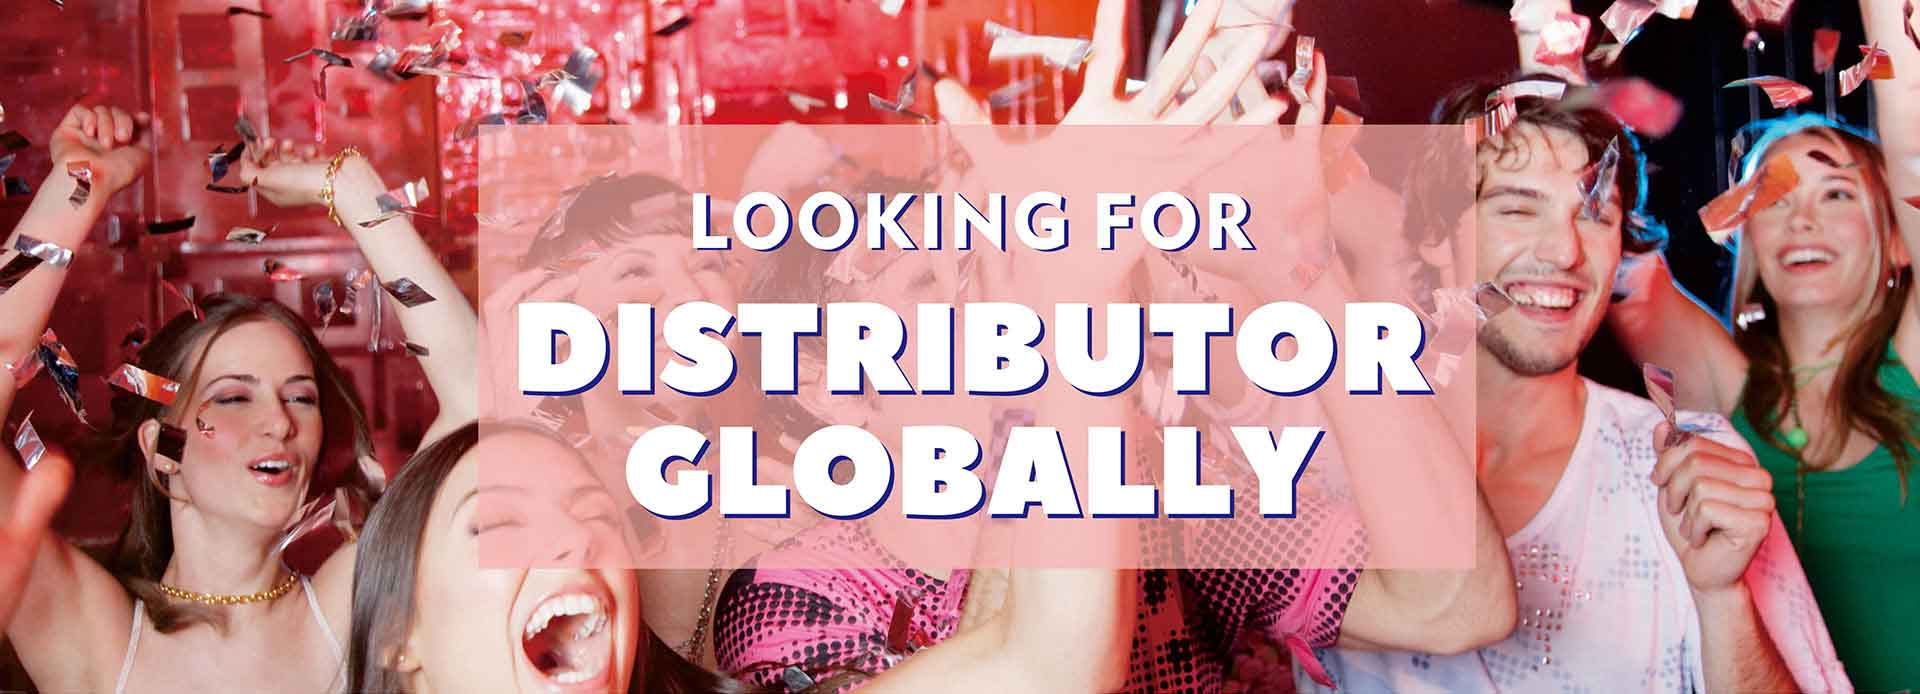 LOOKING FOR DISTRIBUTOR GLOBALLY